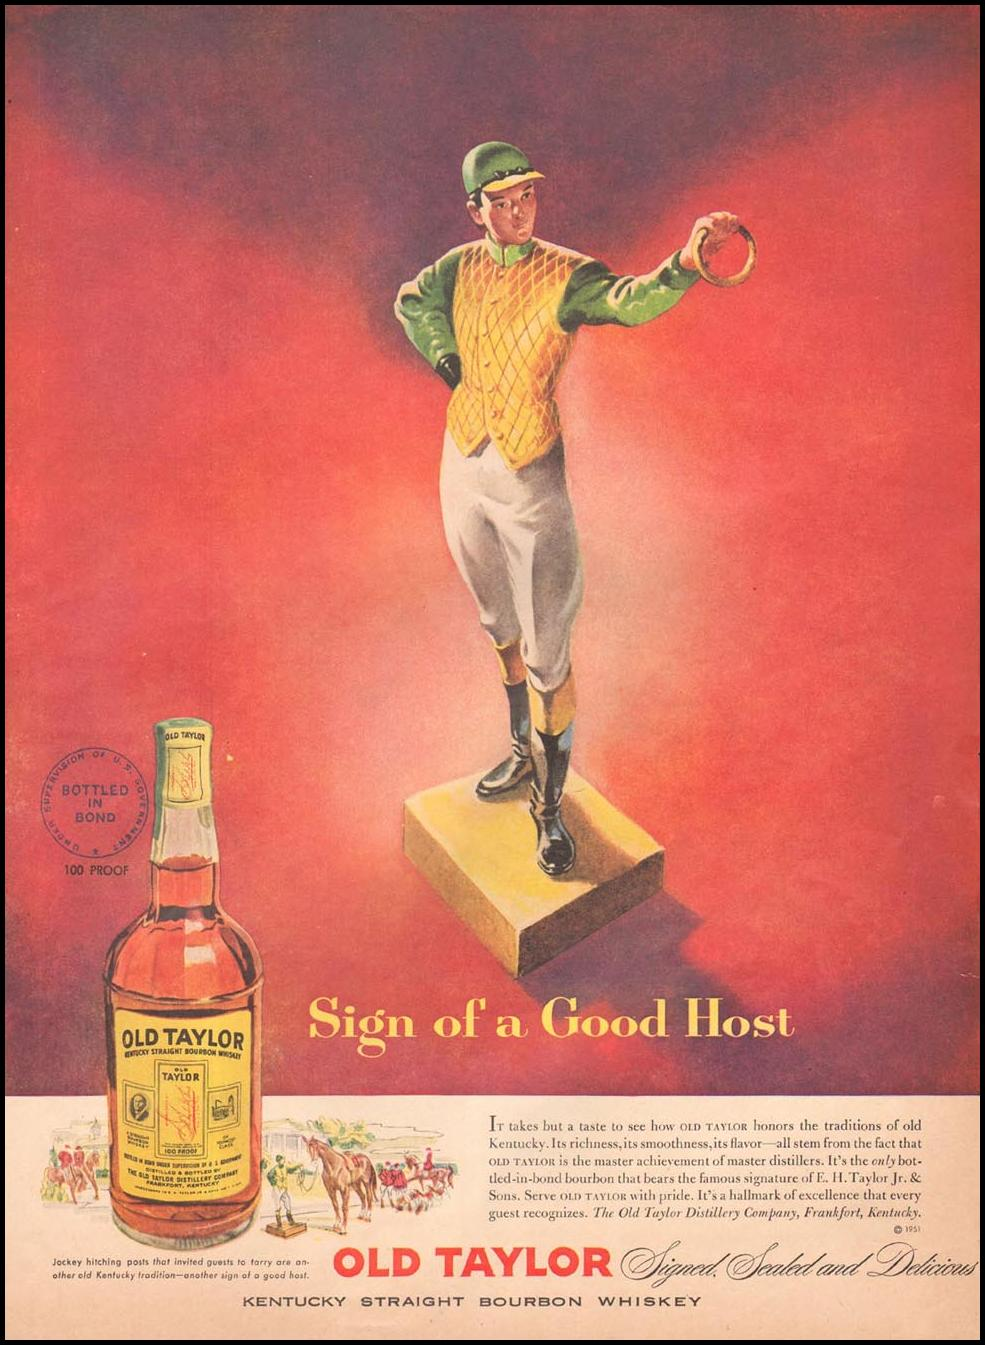 OLD TAYLOR KENTUCKY STRAIGHT BOURBON WHISKEY LIFE 04/30/1951 p. 67